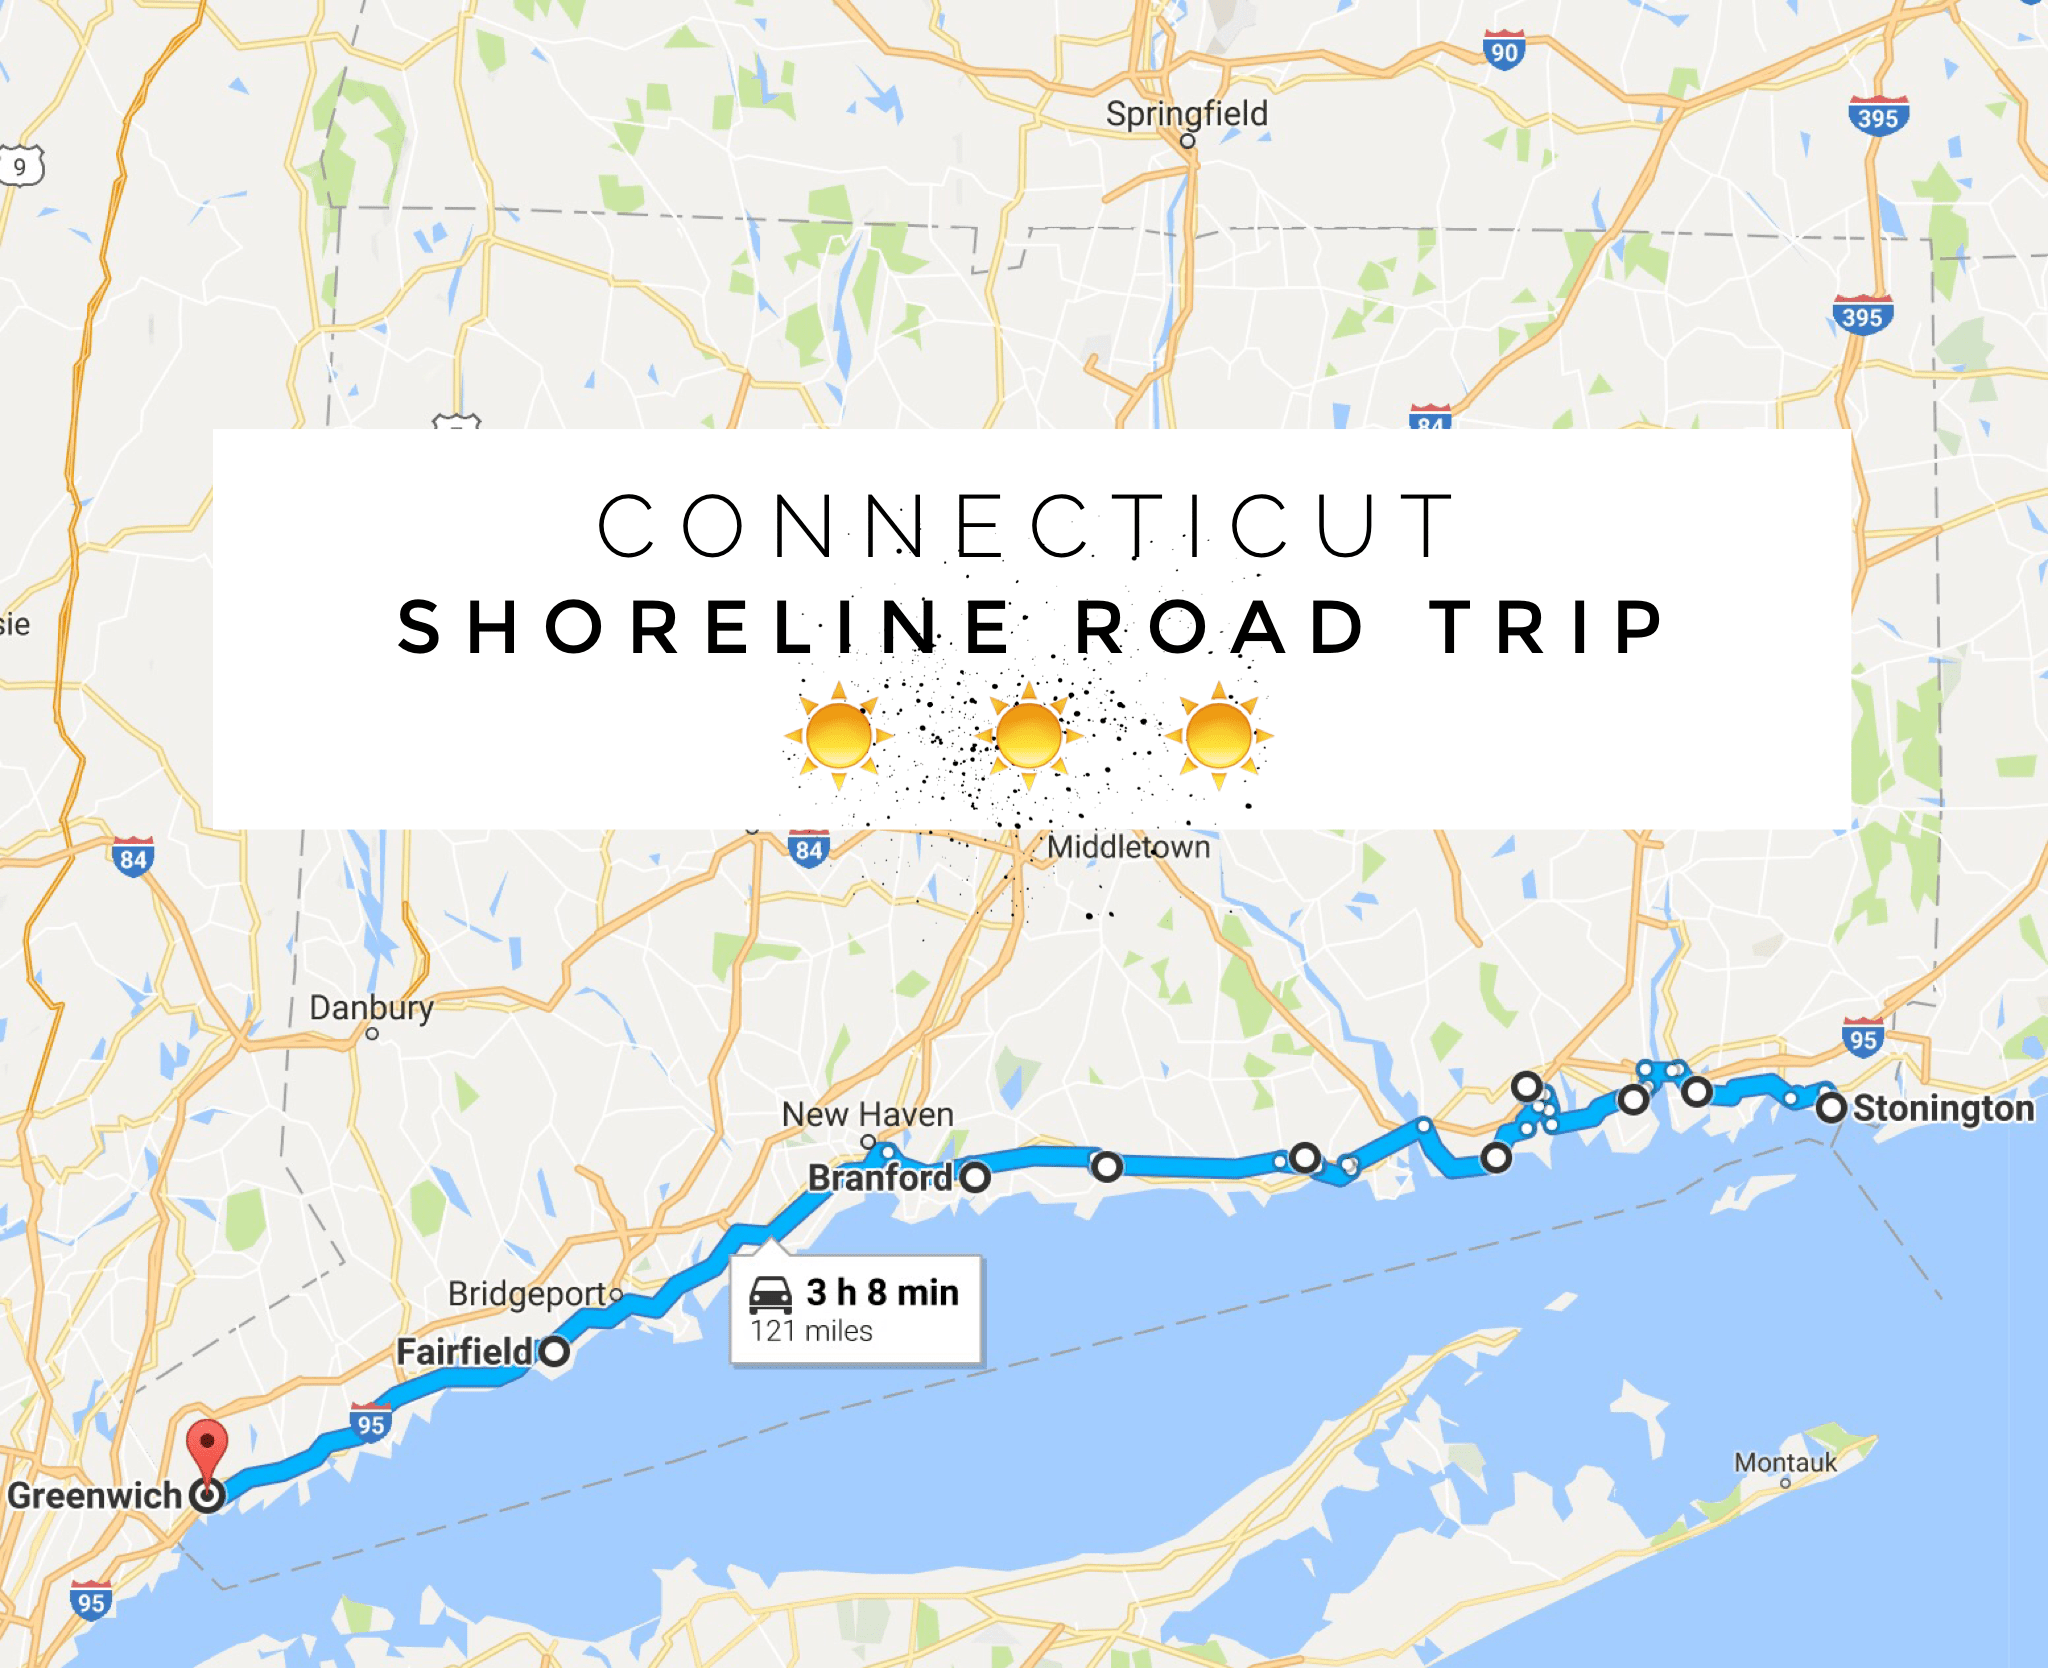 Shoreline Road Trip In Connecticut Shows You Coastal Towns